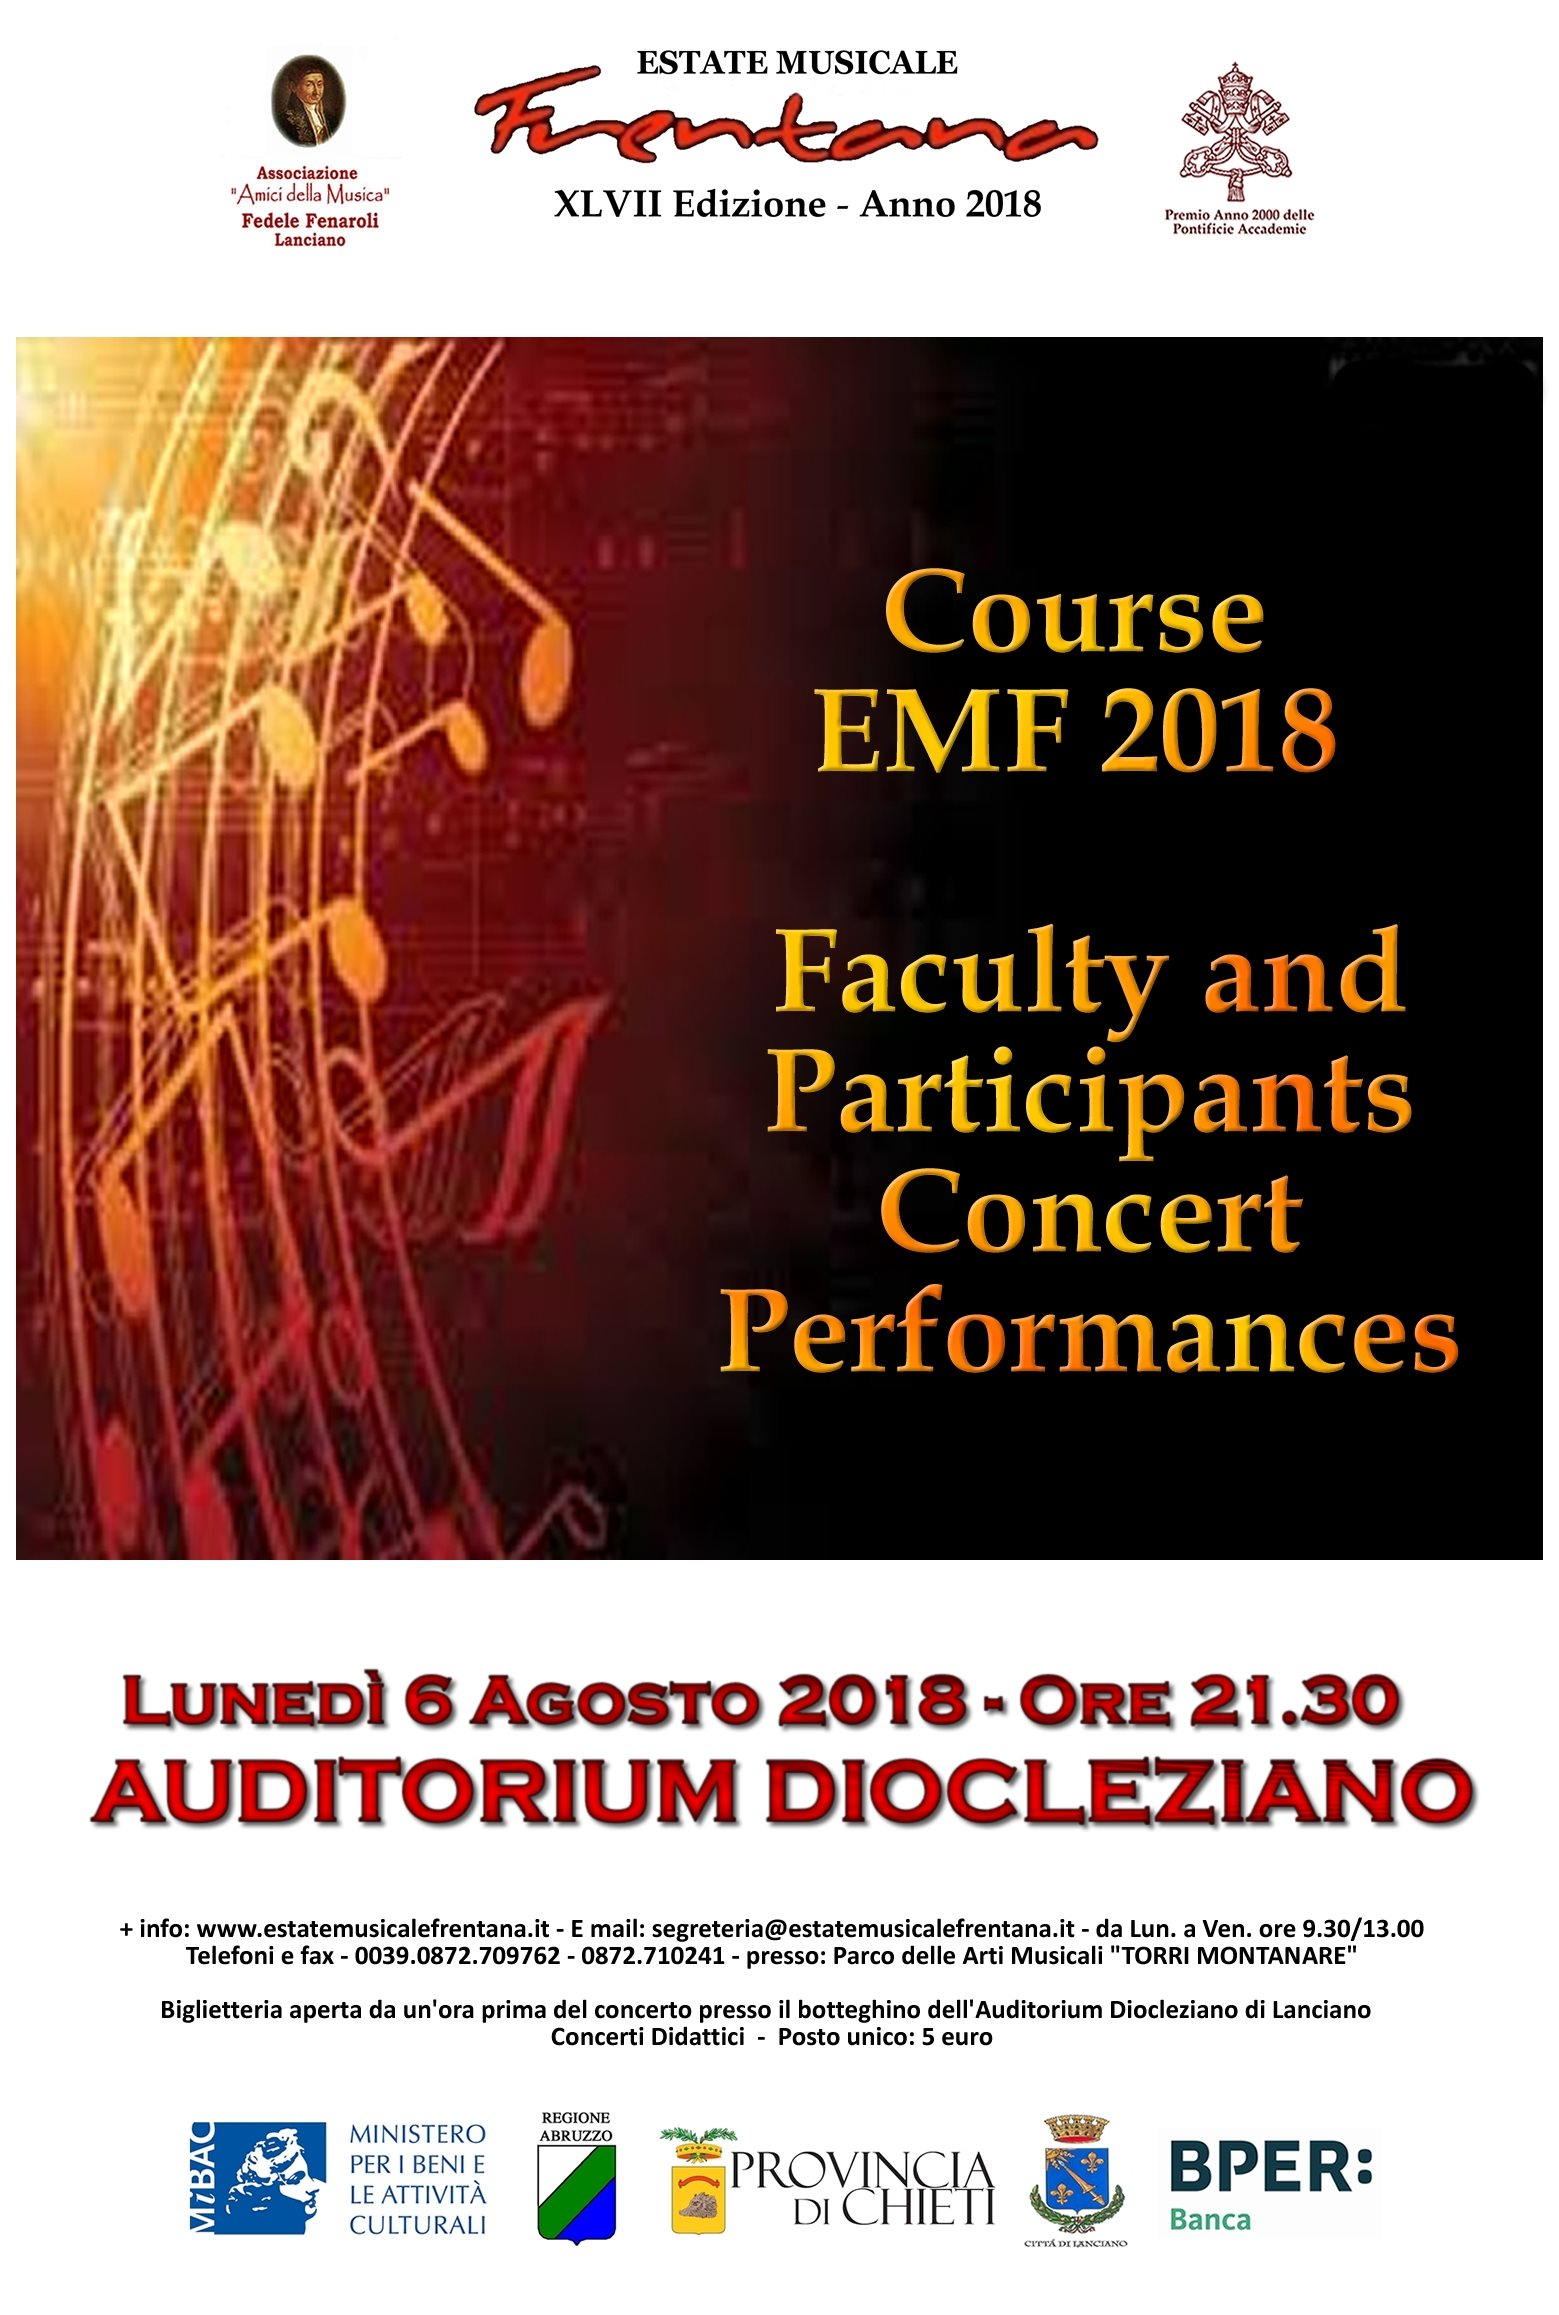 Faculty and Participants Concert Performance - Course EMF 2018